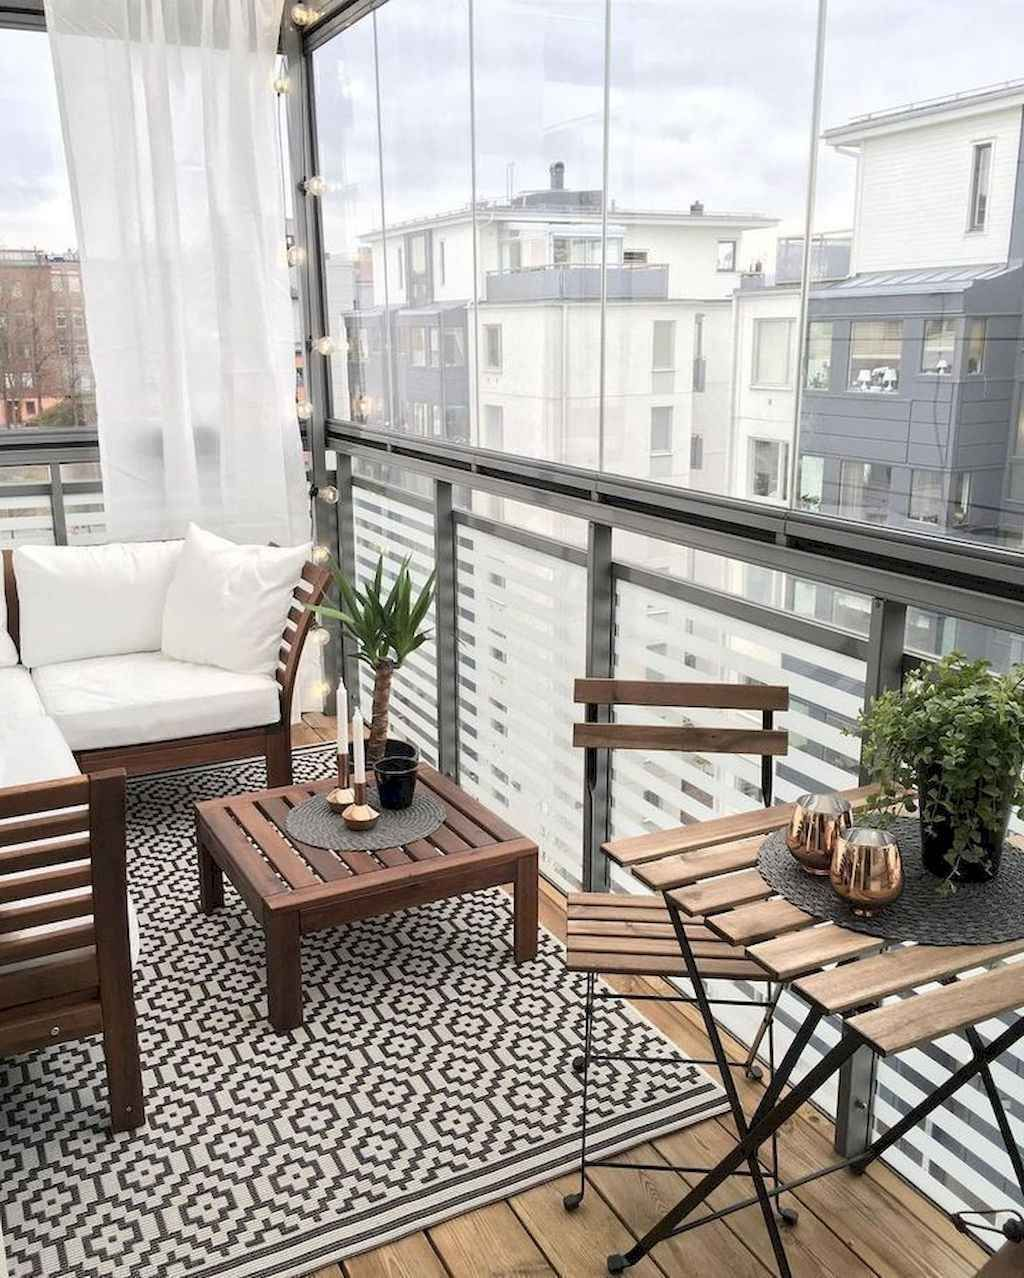 The Best Summer Apartment Decor Ideas 16